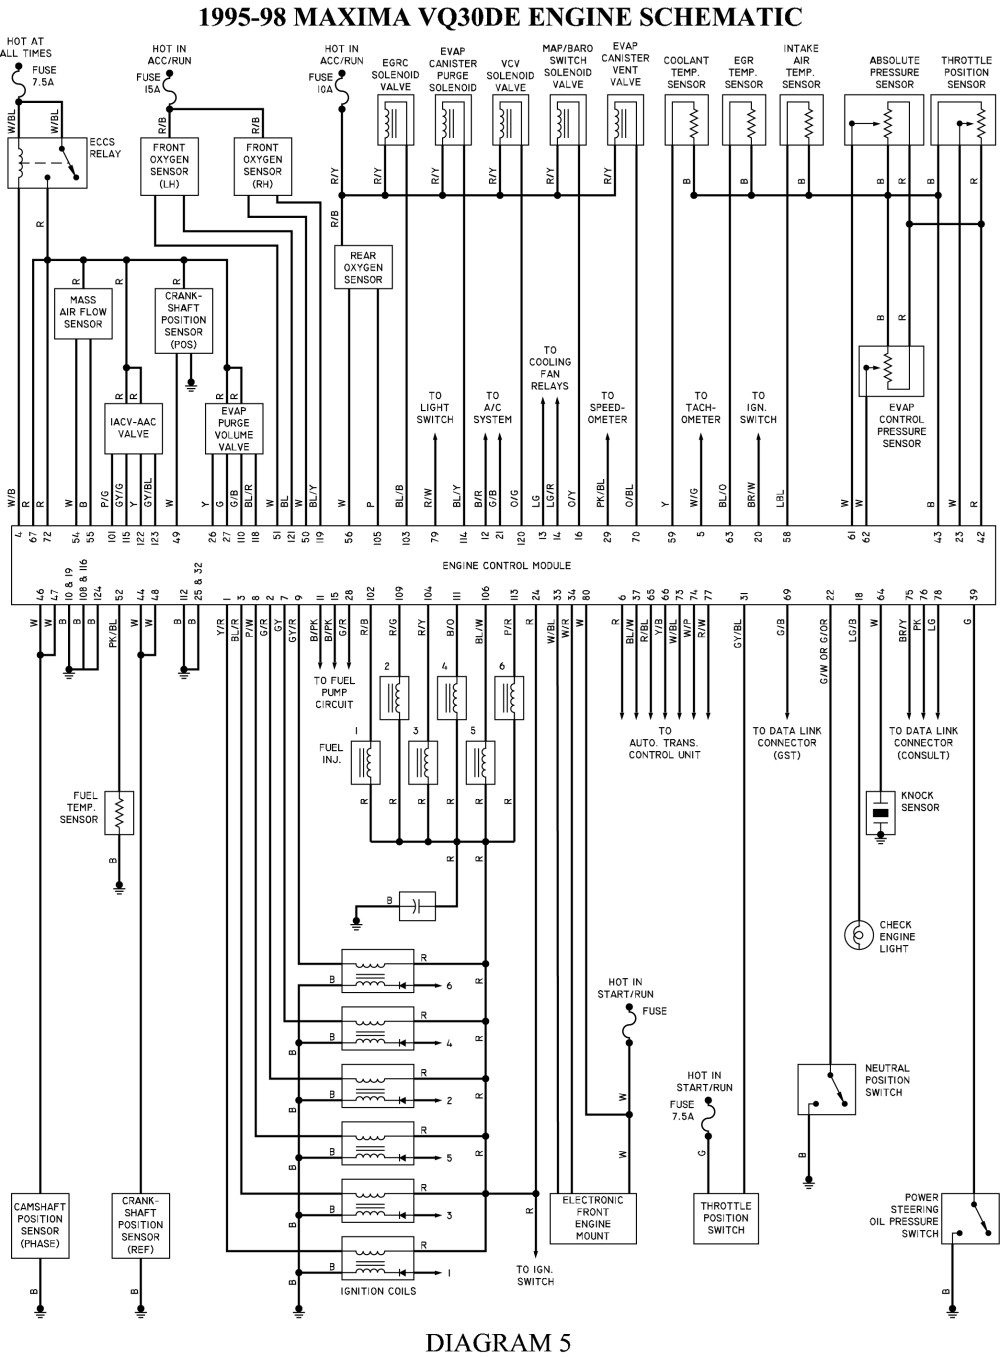 wiring diagram nissan maxima 1995 custom wiring diagram u2022 rh littlewaves co 1997 nissan pickup wiring diagram 97 nissan pickup radio wiring diagram